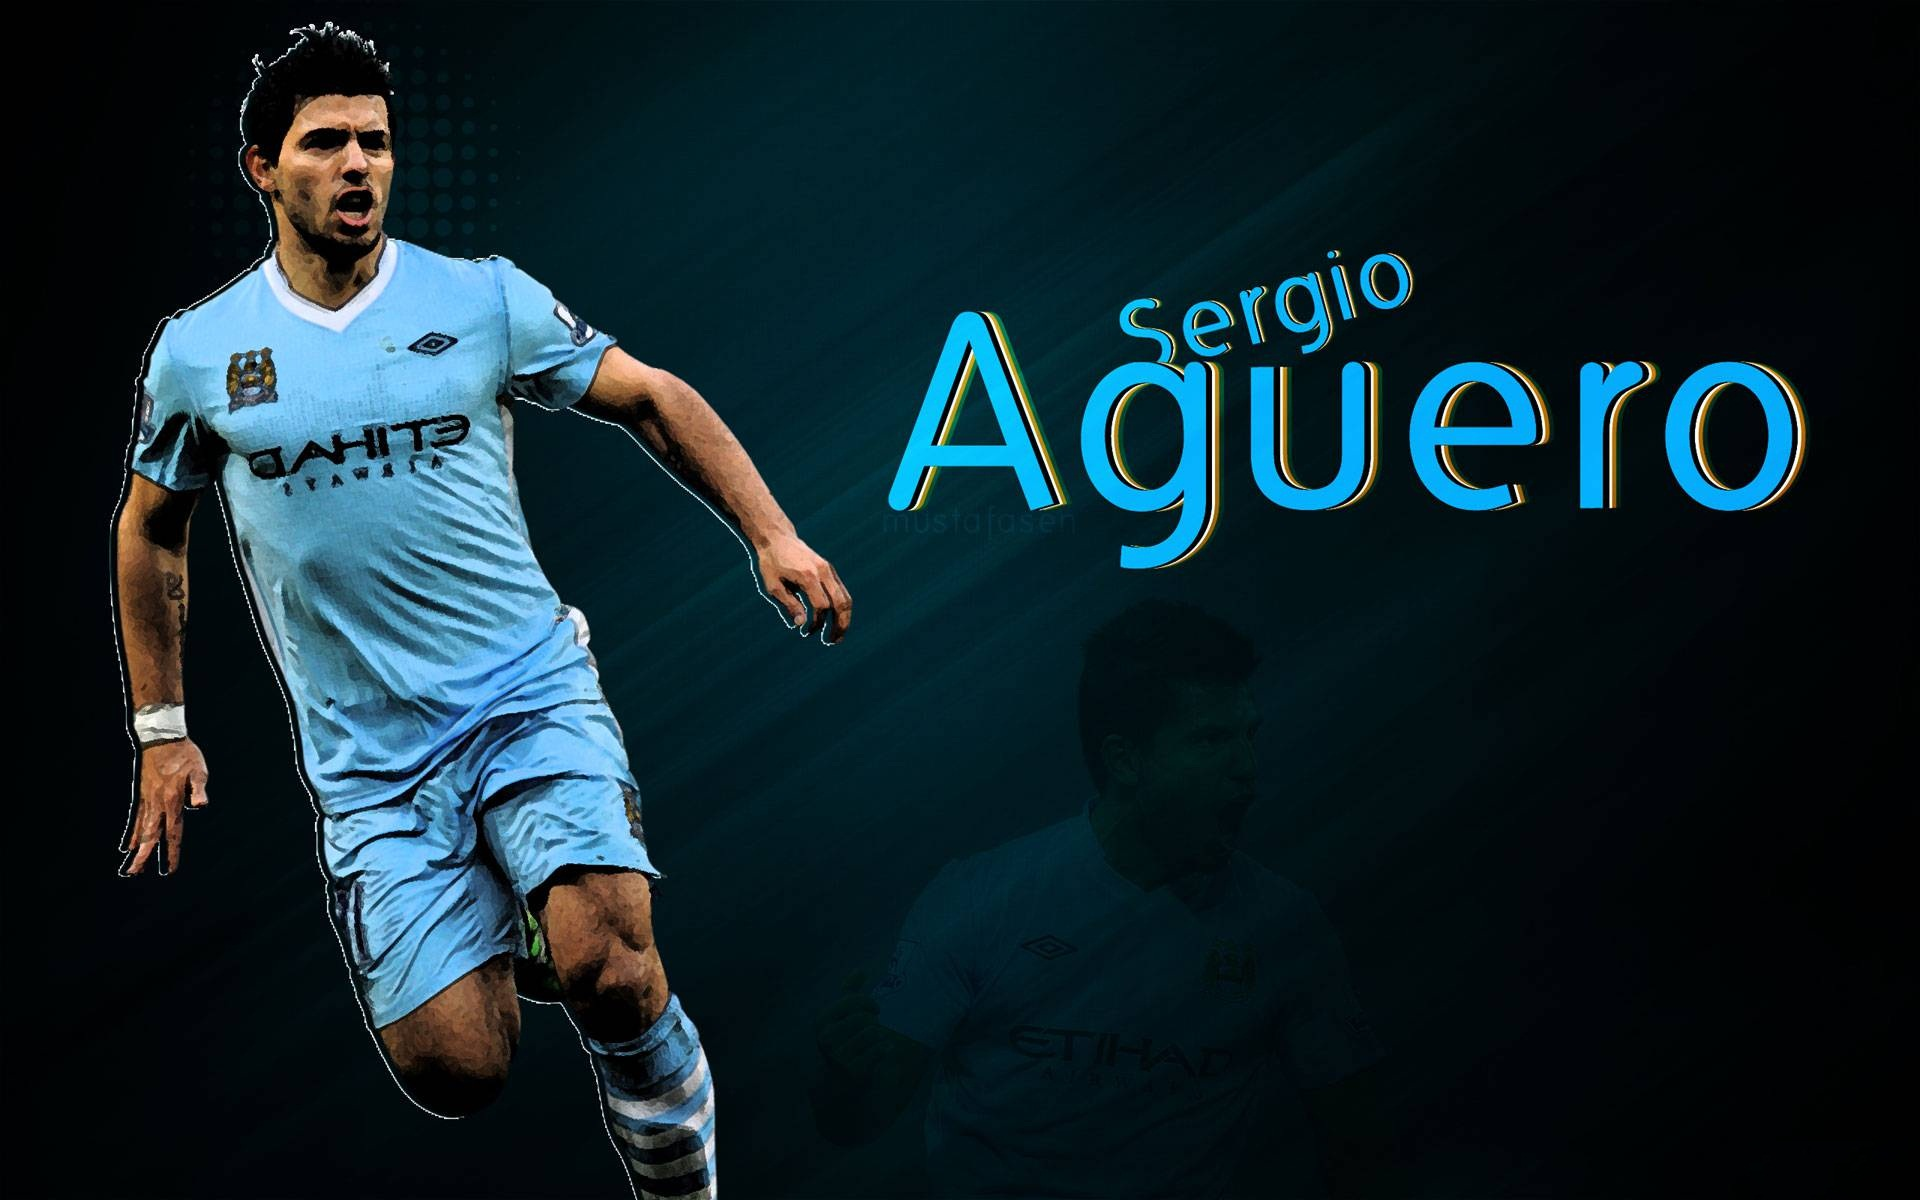 Animated Wallpapers For Pc Desktop Free Download Sergio Aguero Hd Wallpaper